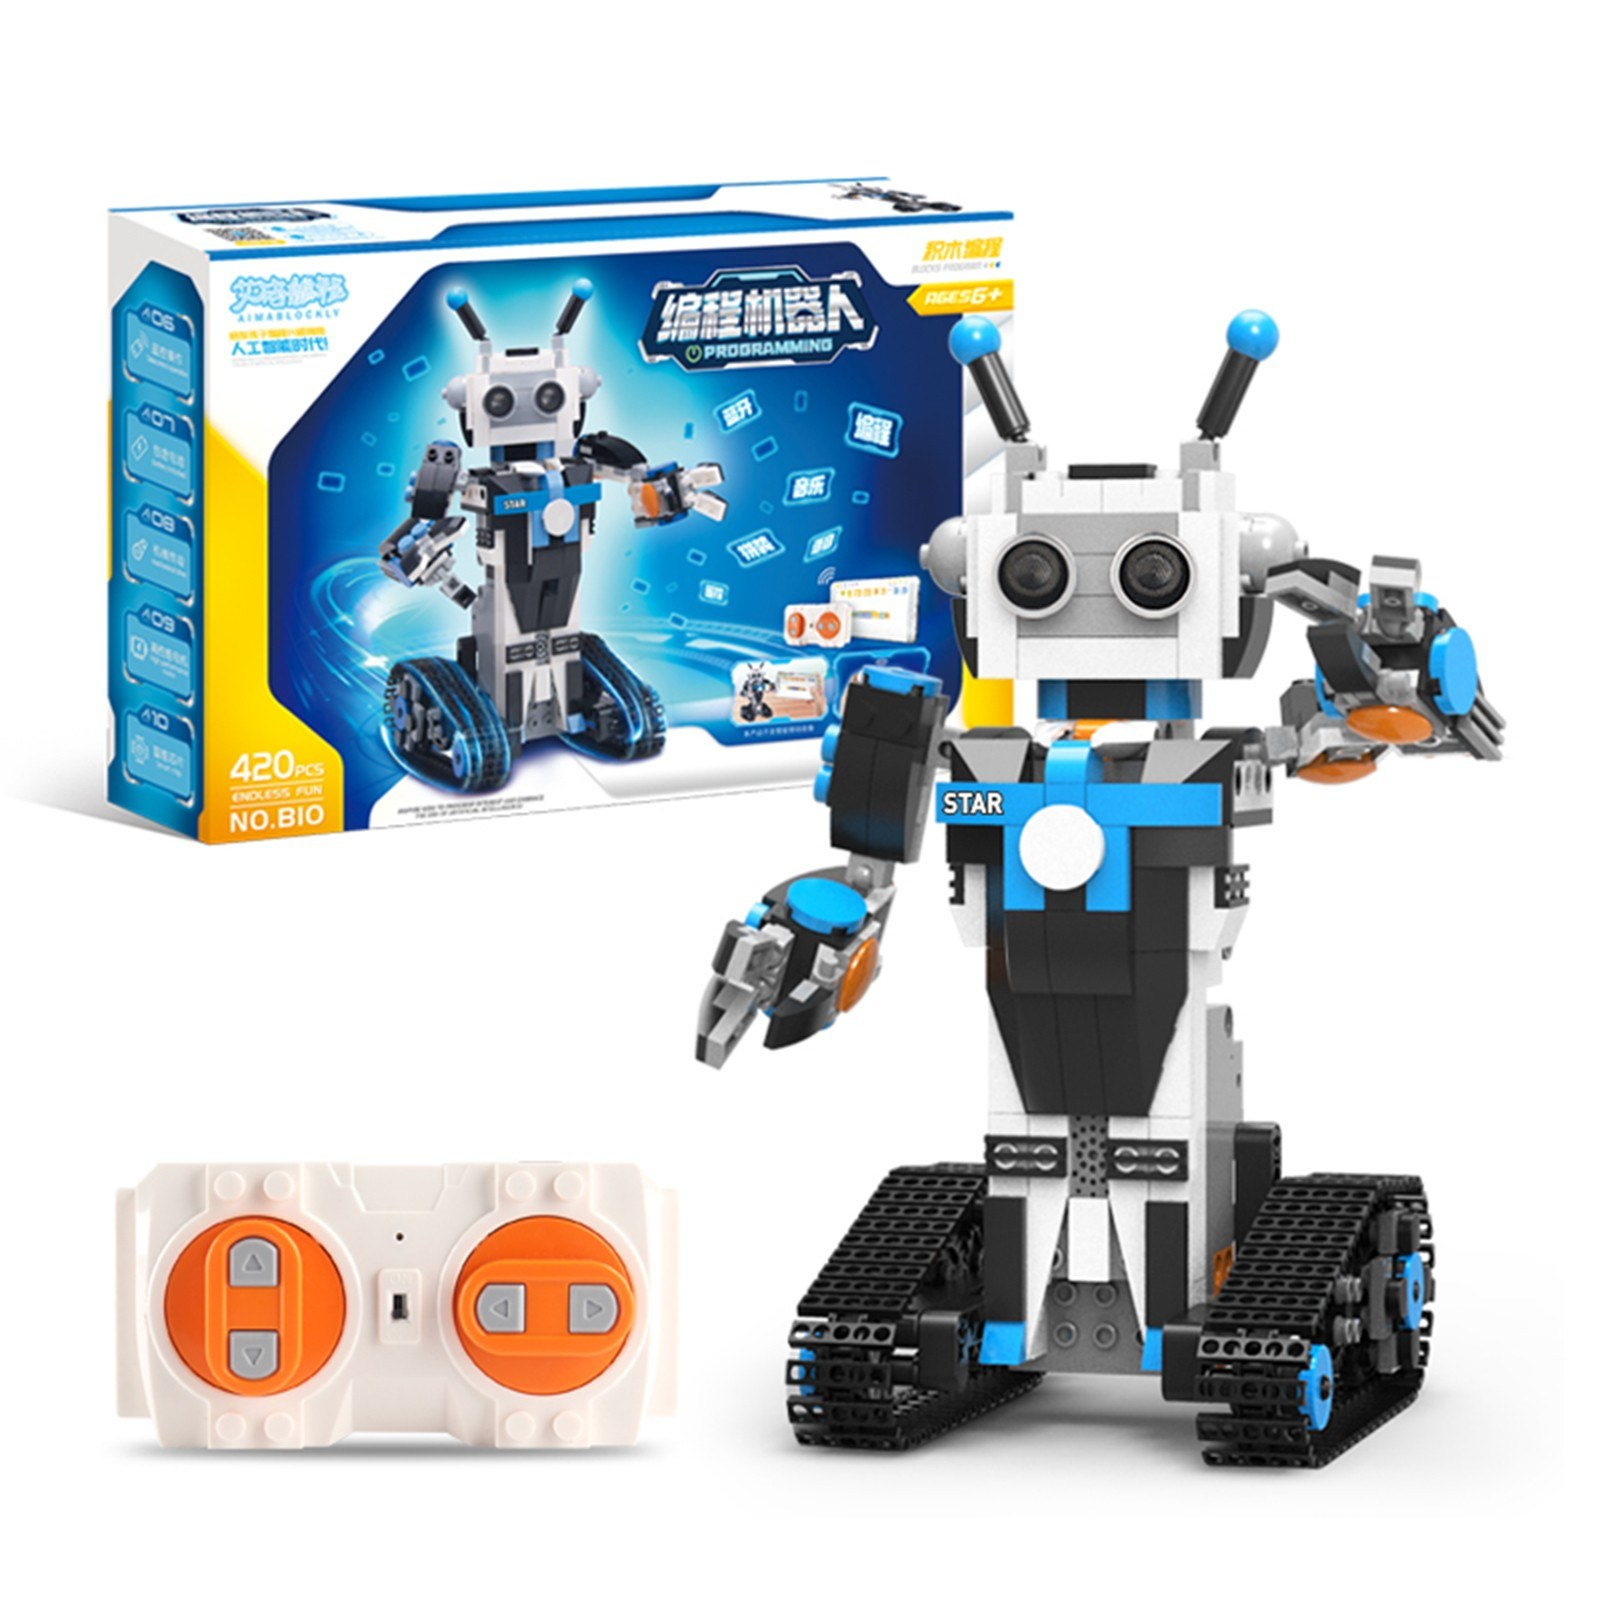 tomtop.com - 43% OFF Smart Robot DIY Kit, Free Shipping $35.99